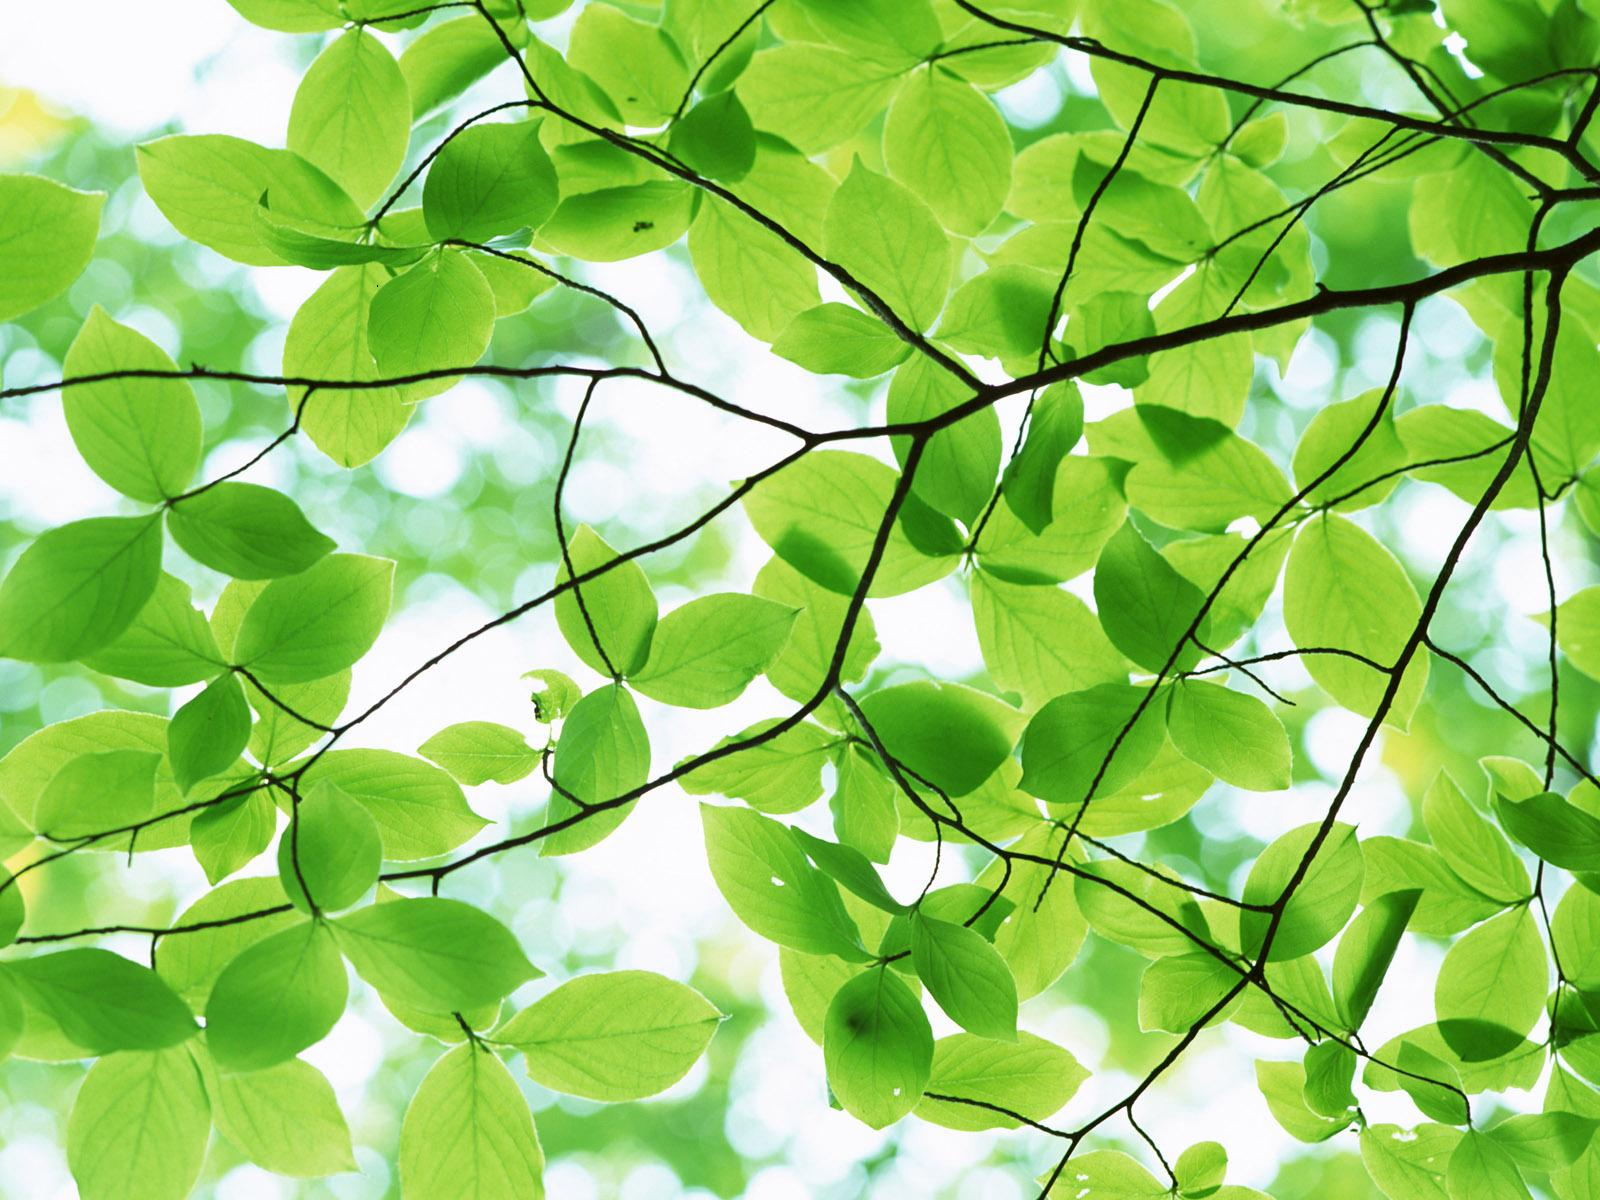 bark-of-a-tree-pleasant-green-leaves-desktop-backgrounds-pictures.jpg